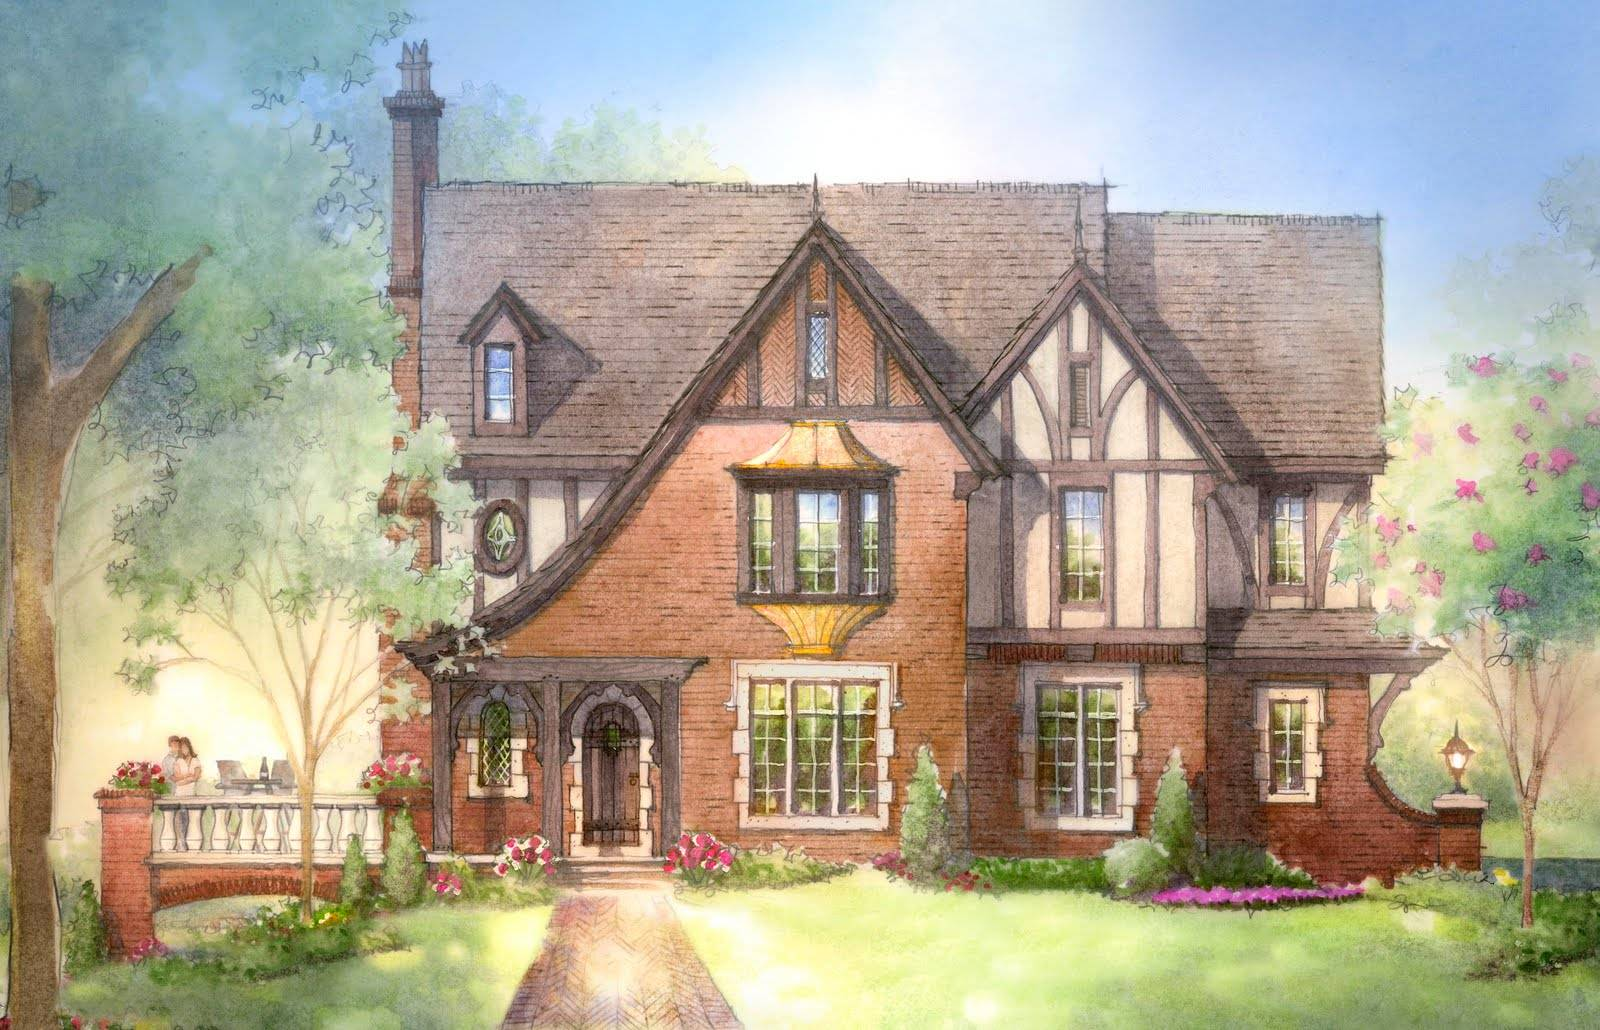 Archival Designs Offers House Plans Luxury Palladian